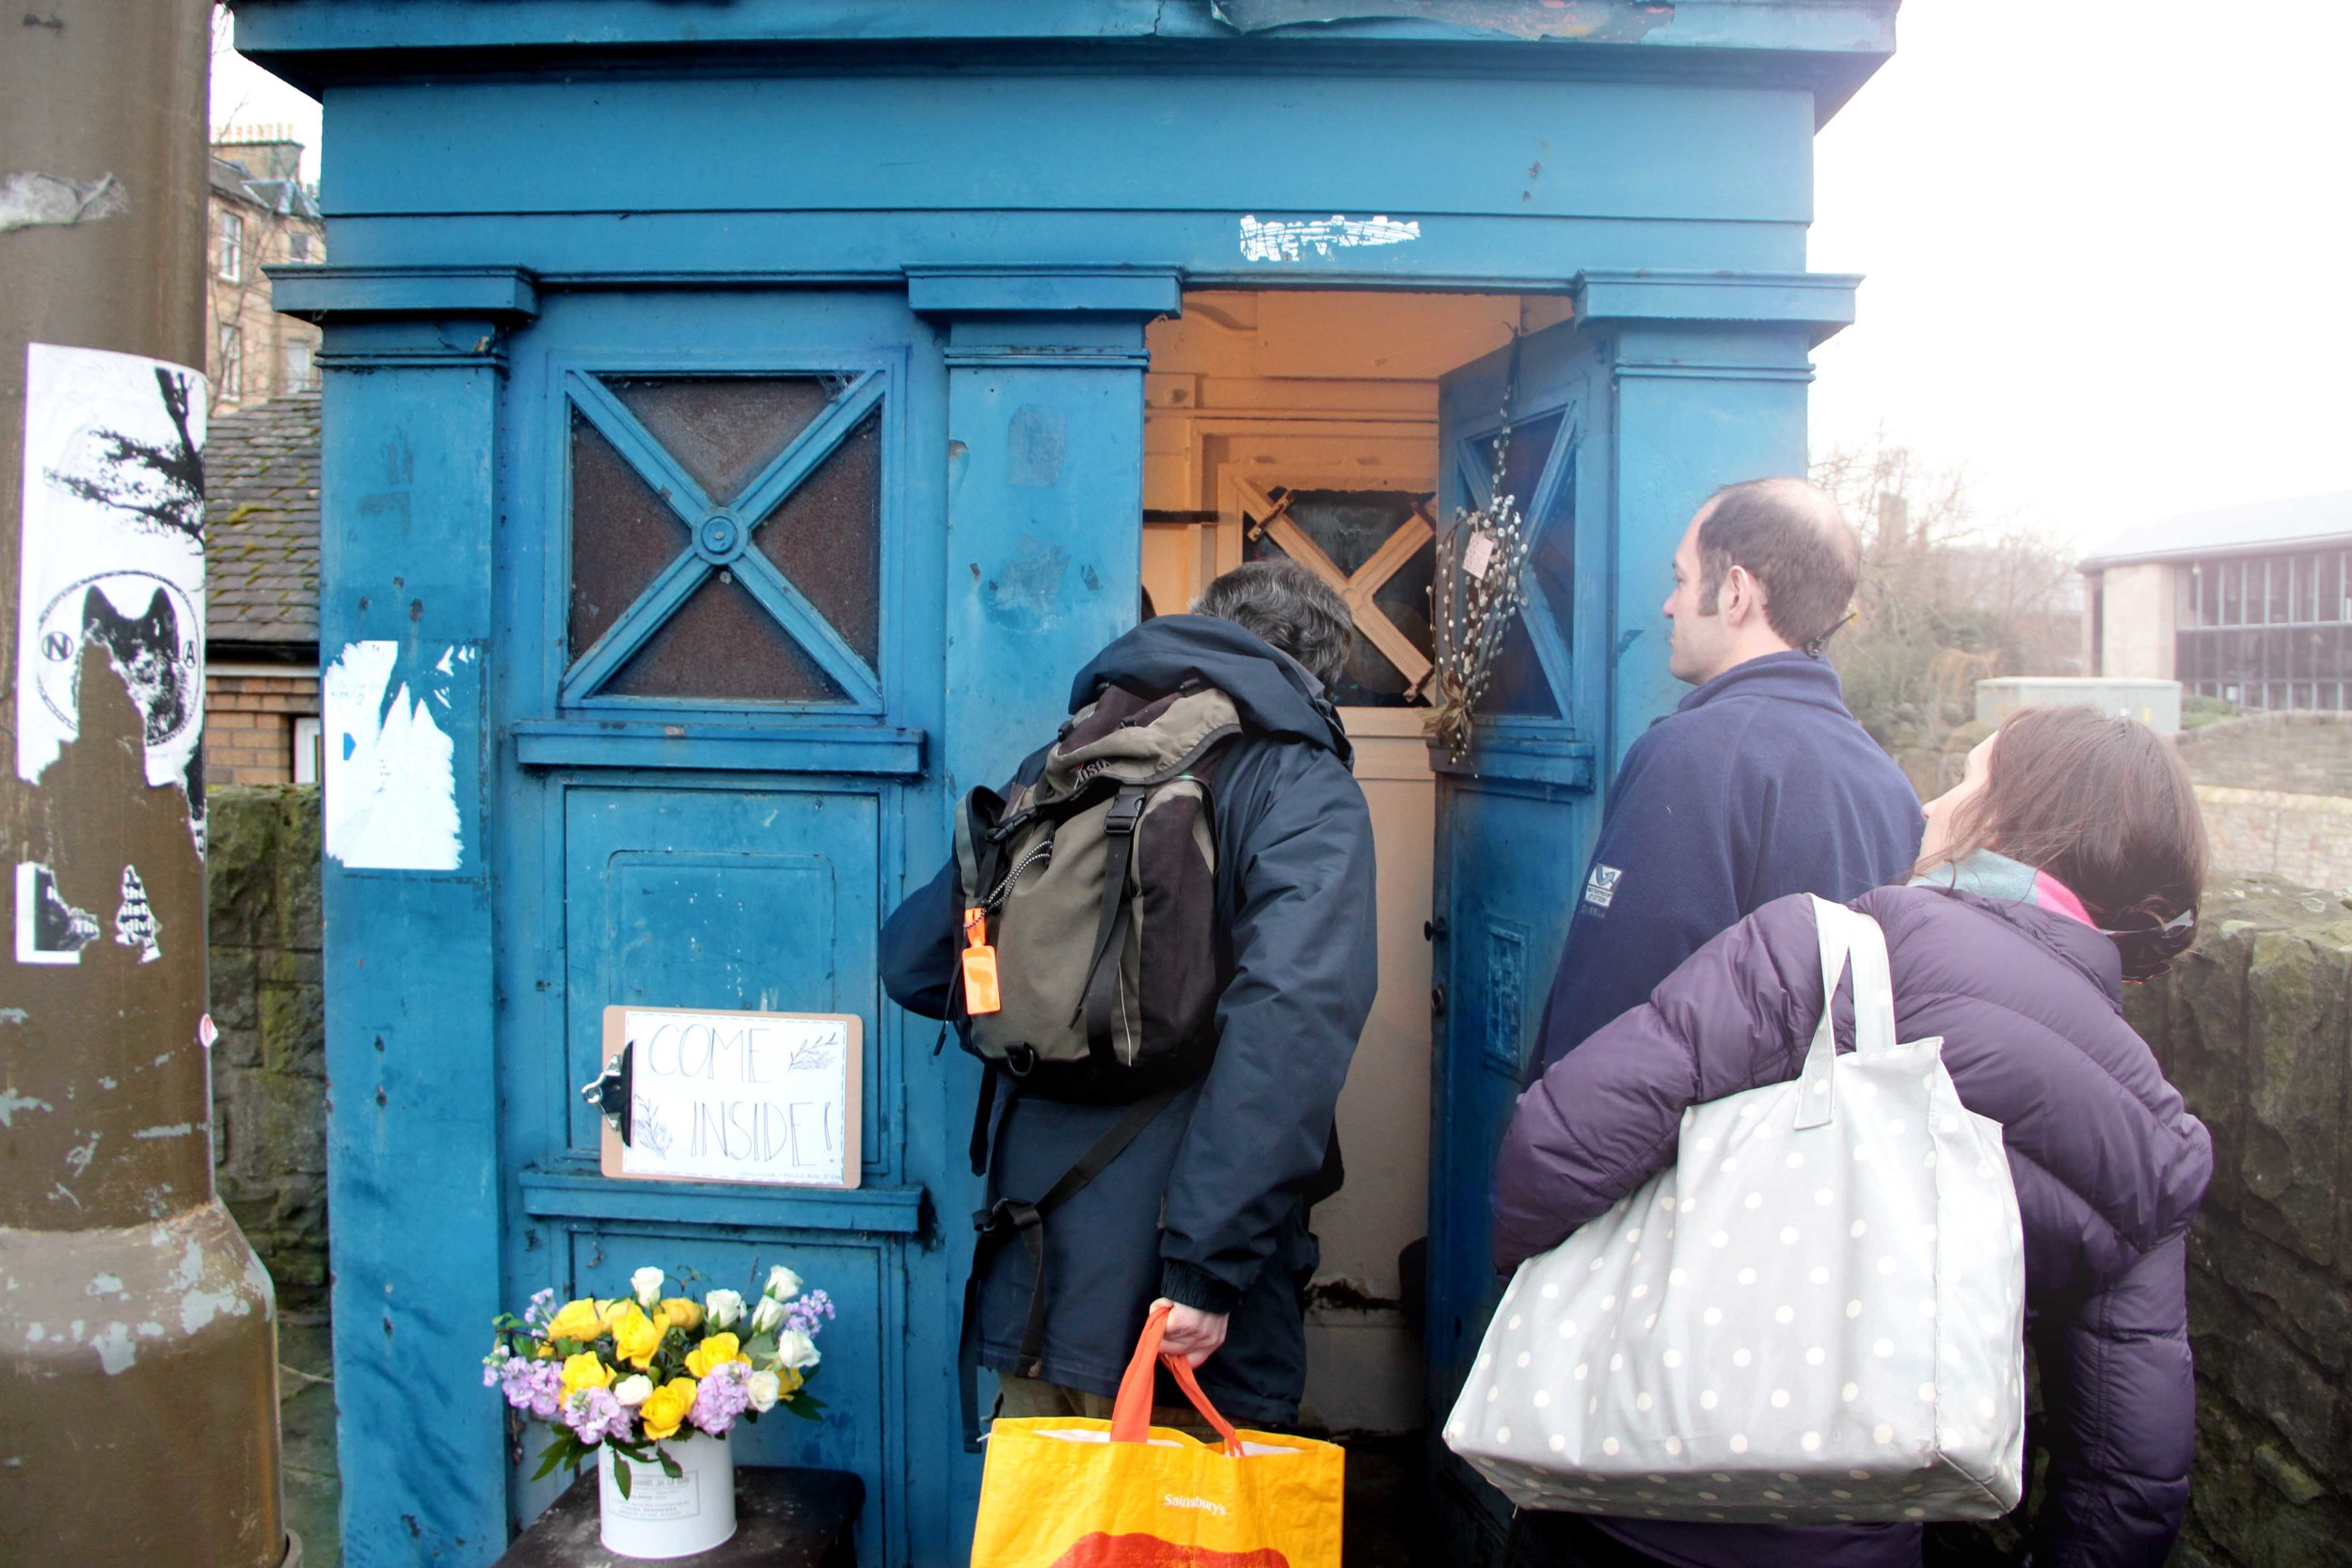 Police Box_Engagement 22 lo res.jpg